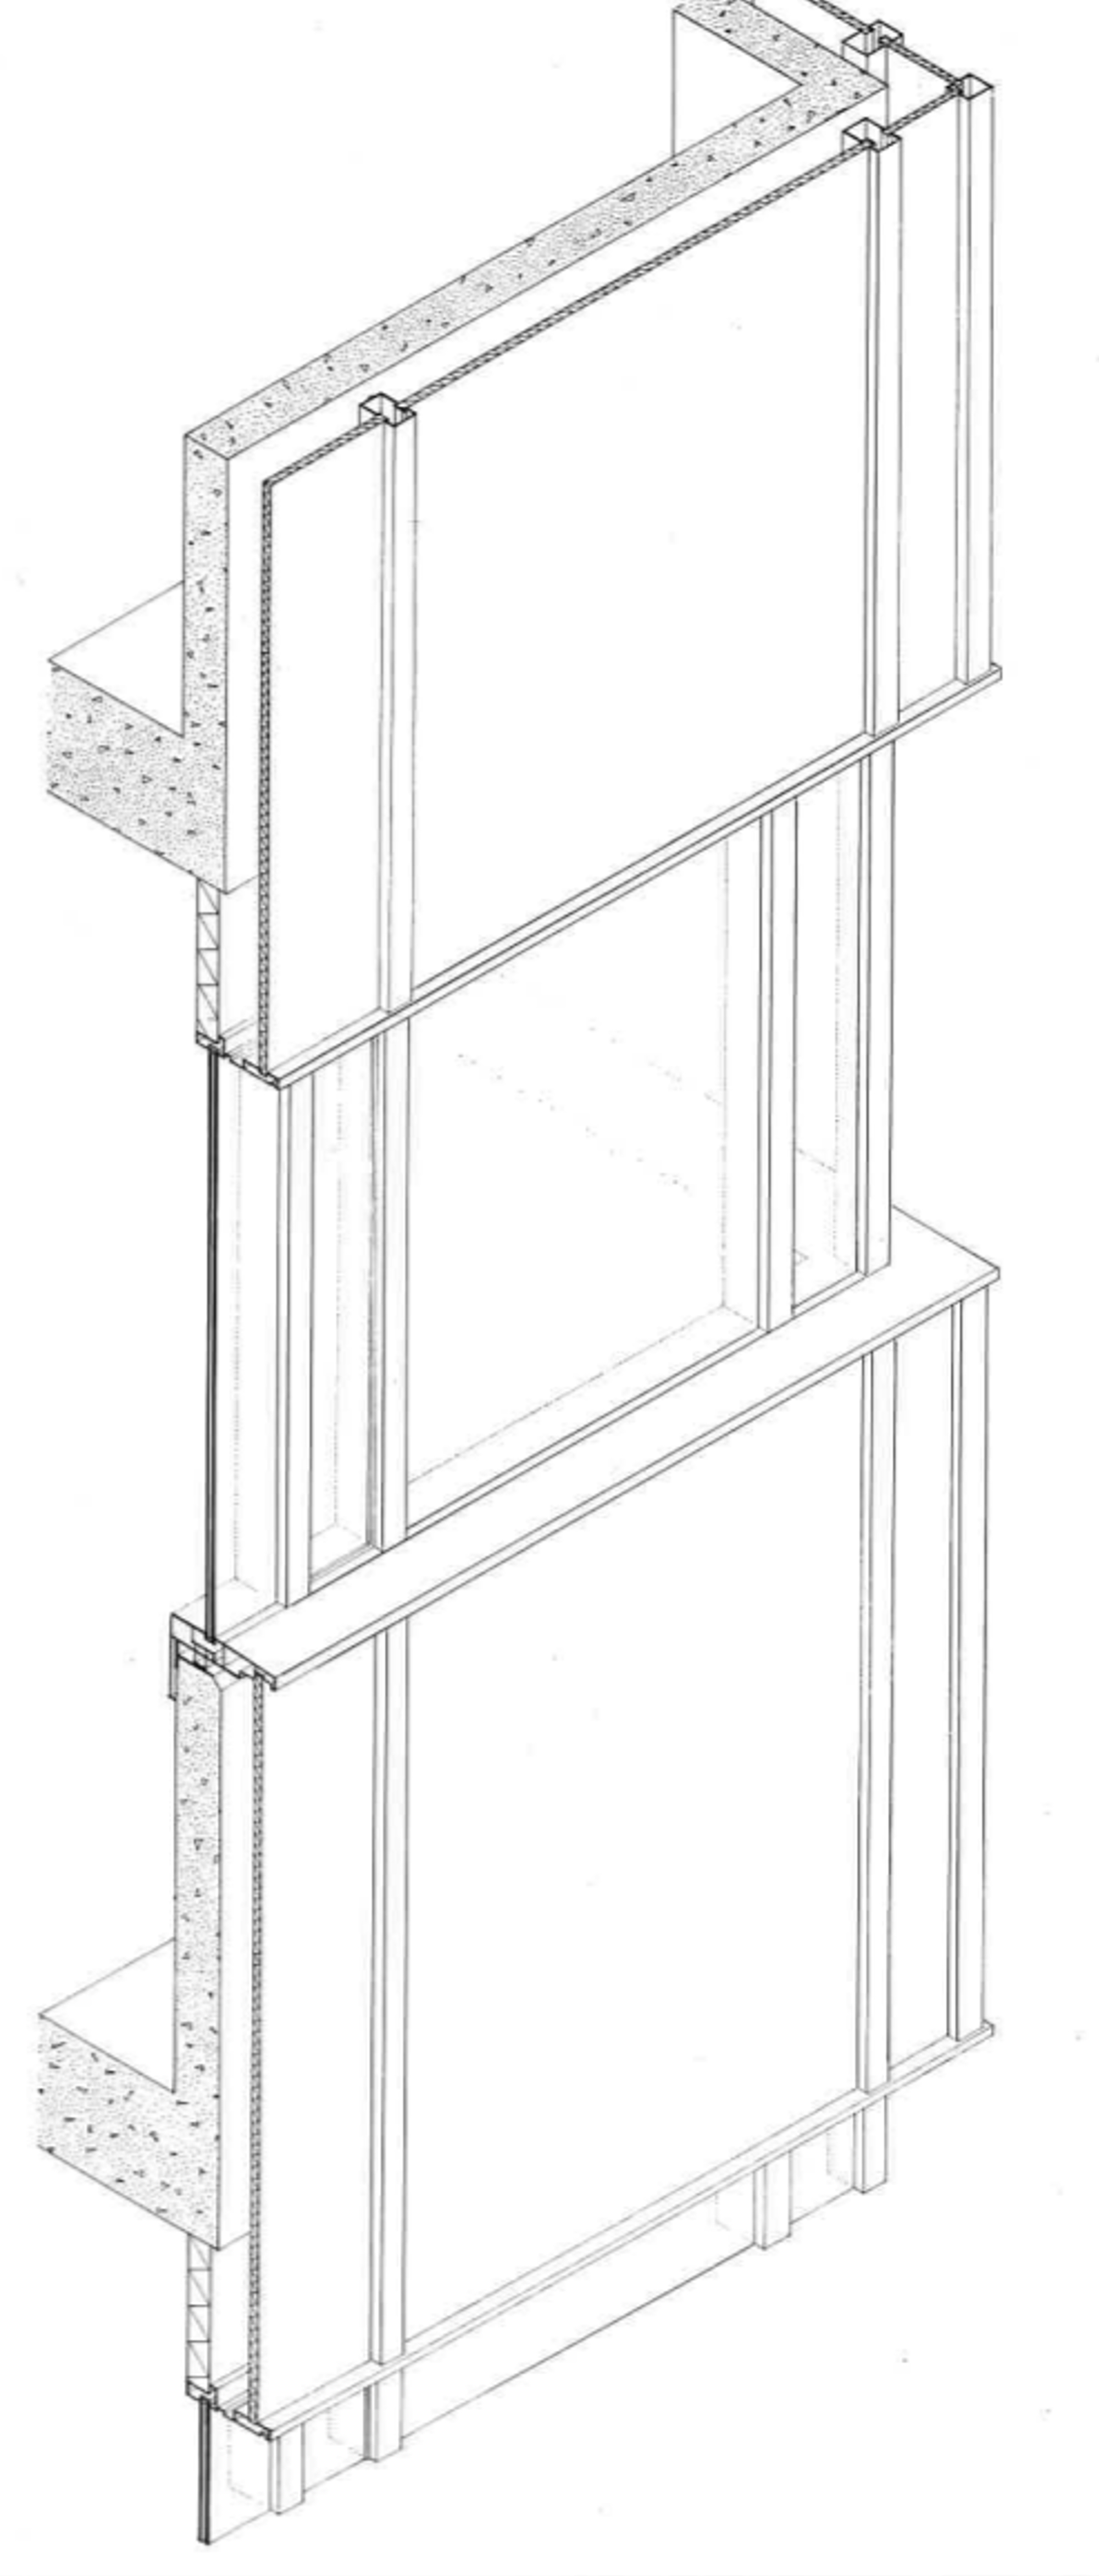 Acoustic Curtain Wall The Curtain Wall Either A Finishing Or A Support 046 Facad3s